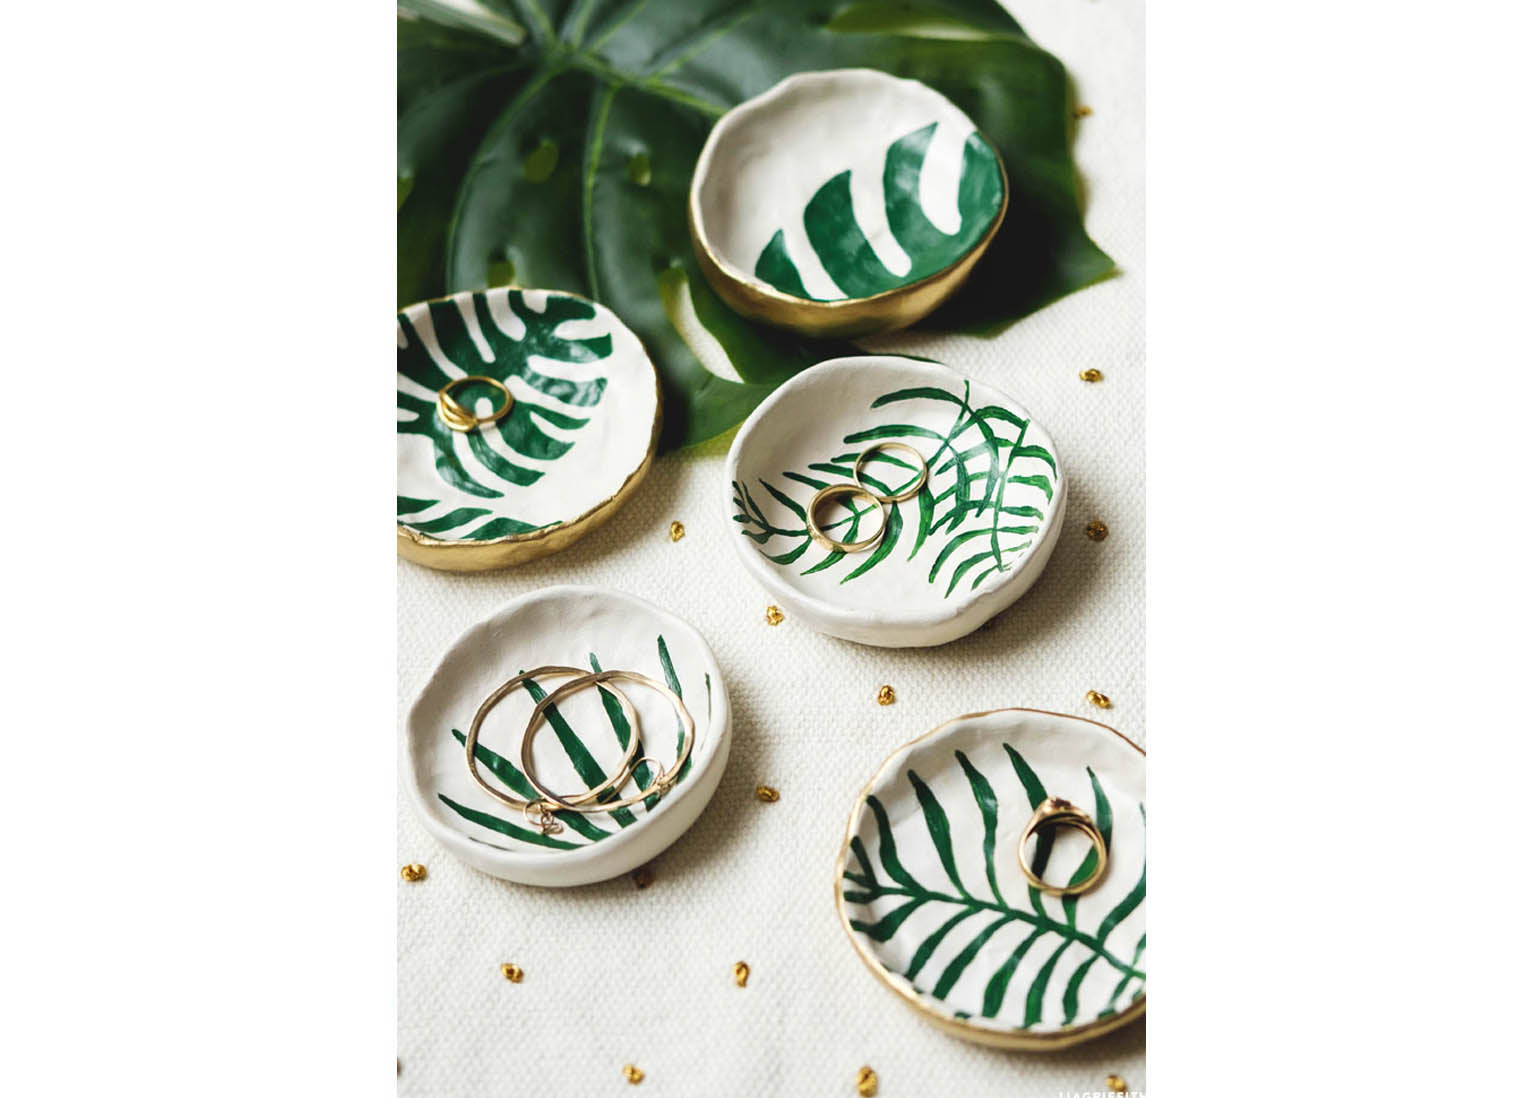 A beautiful photograph of tropical themed trinket dishes-perfect for storing jewellery such as rings and earrings